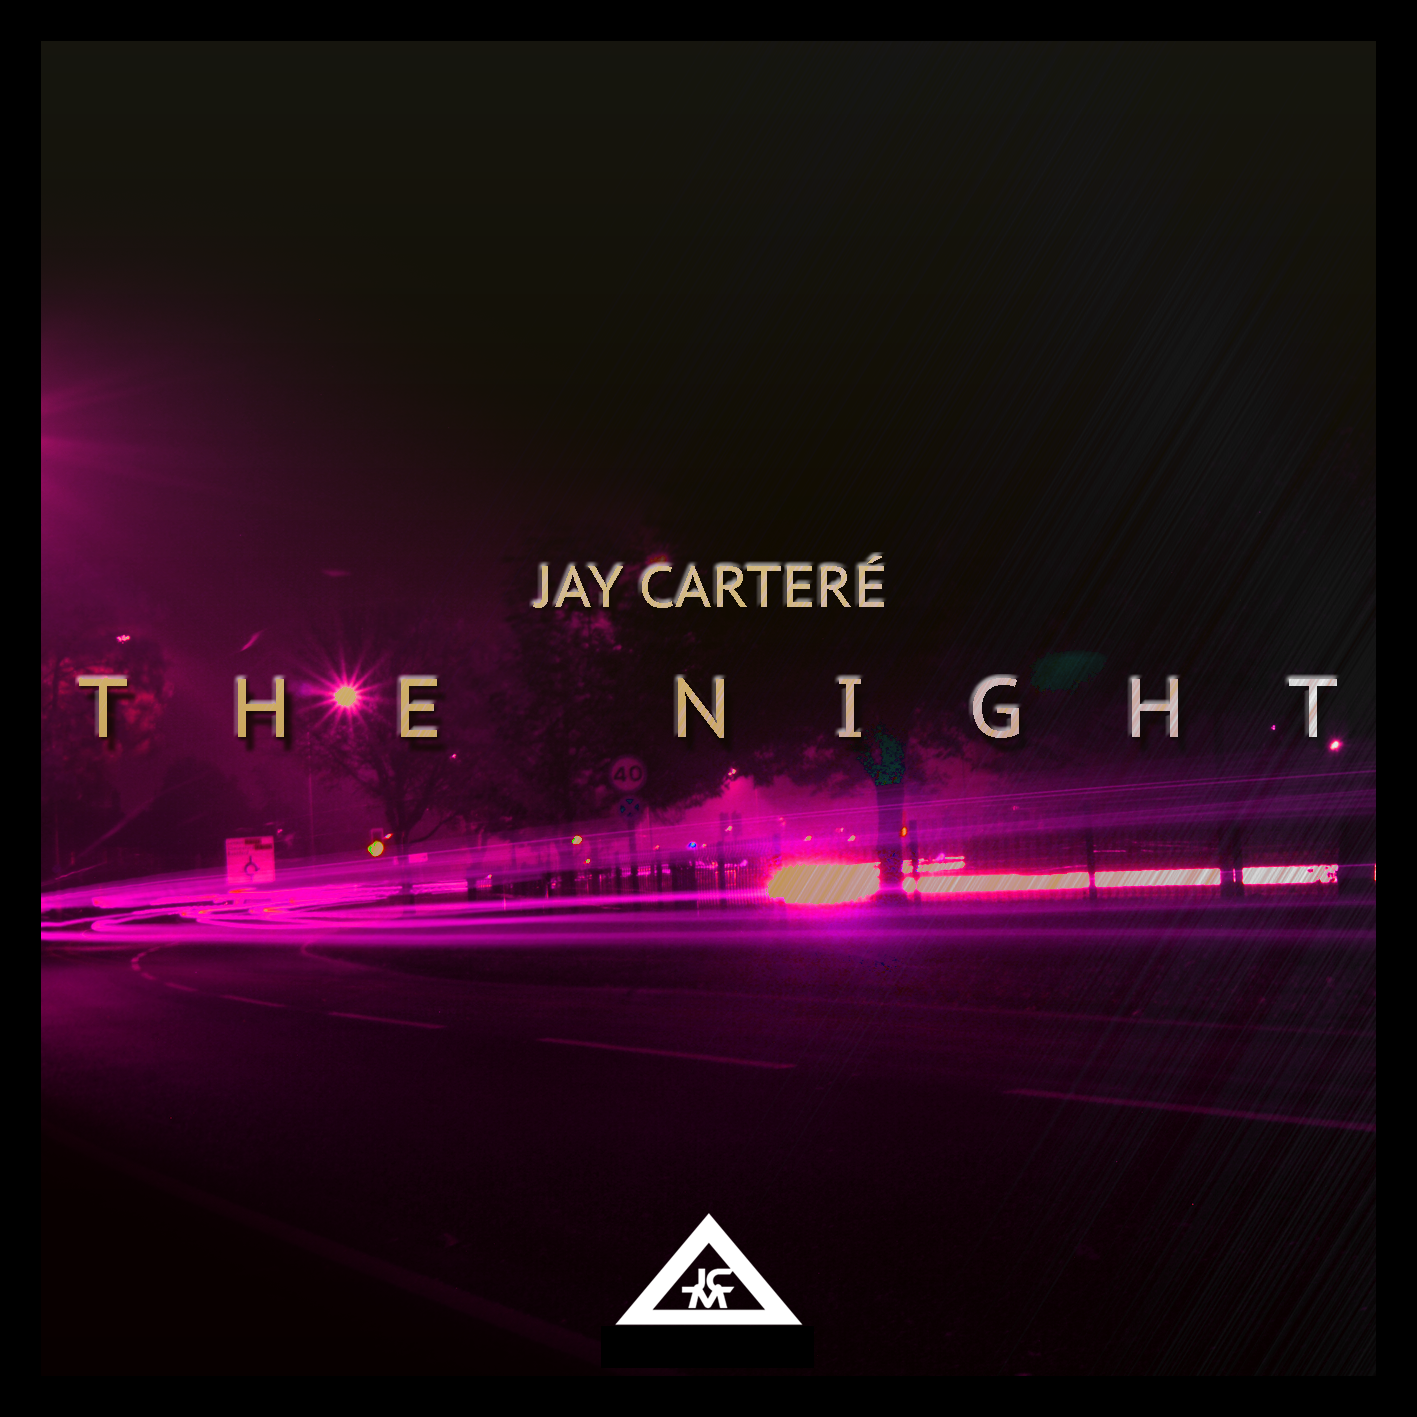 The Night is Jay Carteré's first dance single. Buy it from iTunes or Bandcamp here.